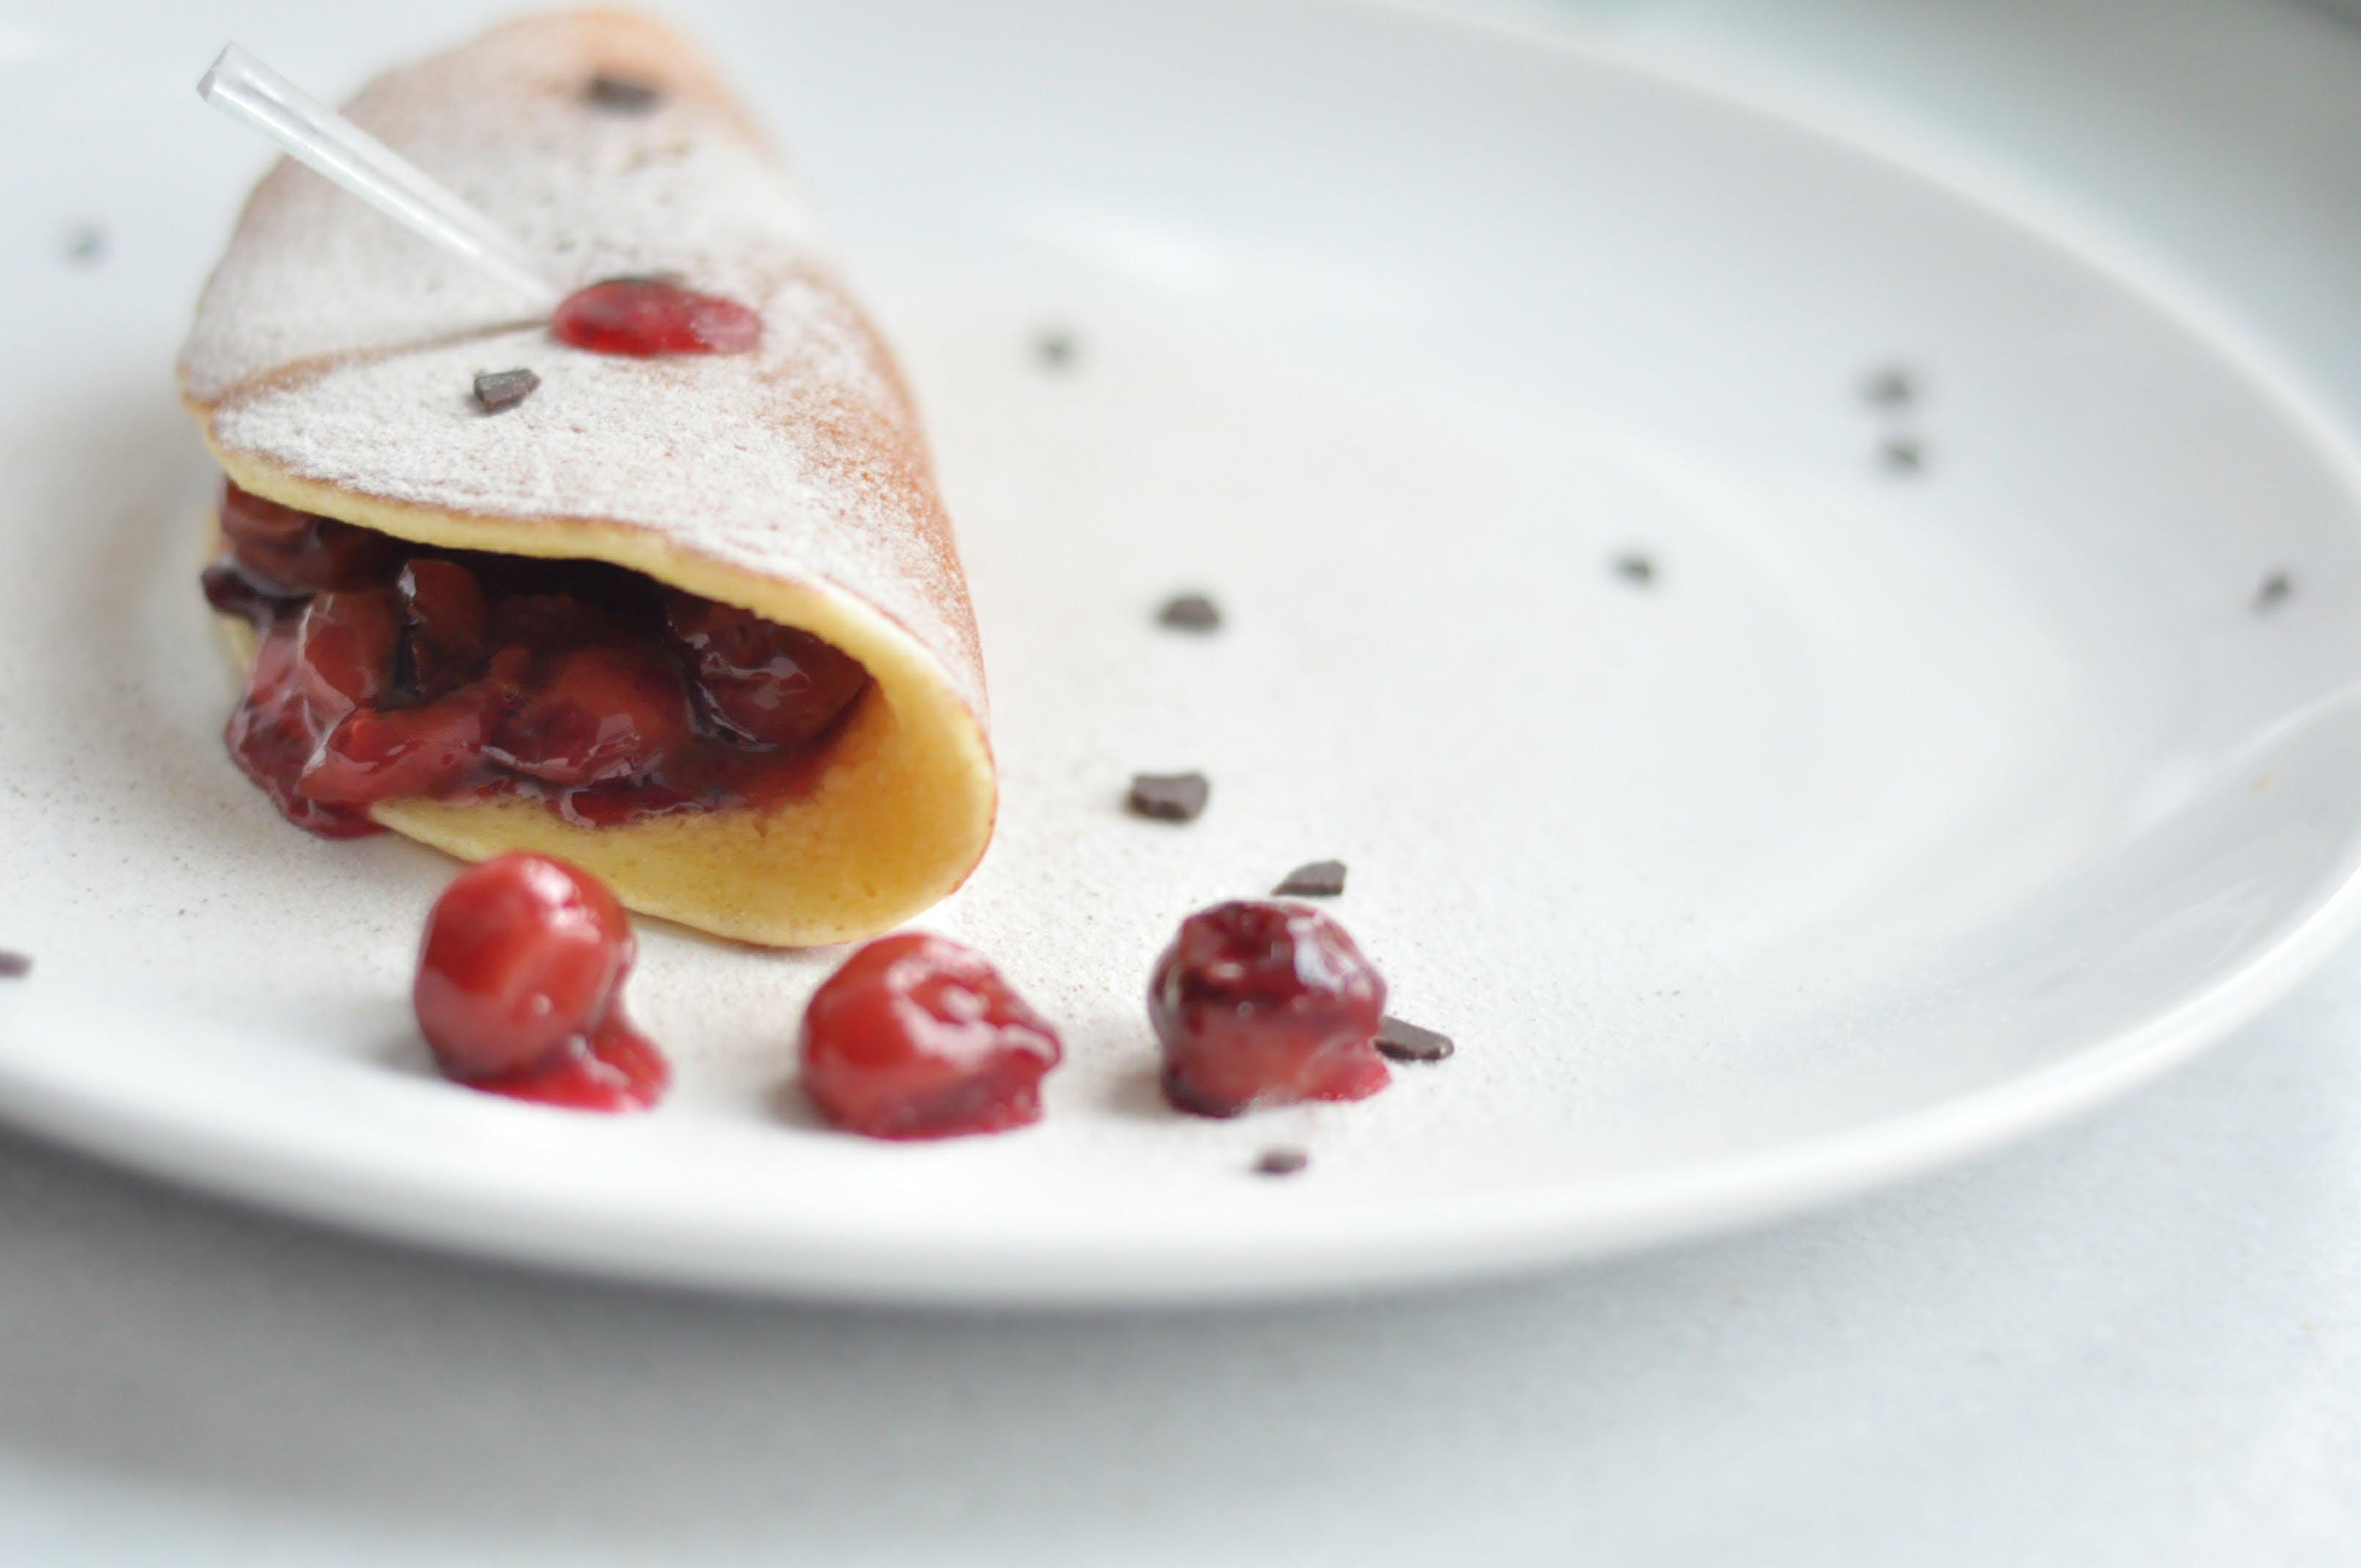 Cherry Crepe Dish on Round White Ceramic Plate